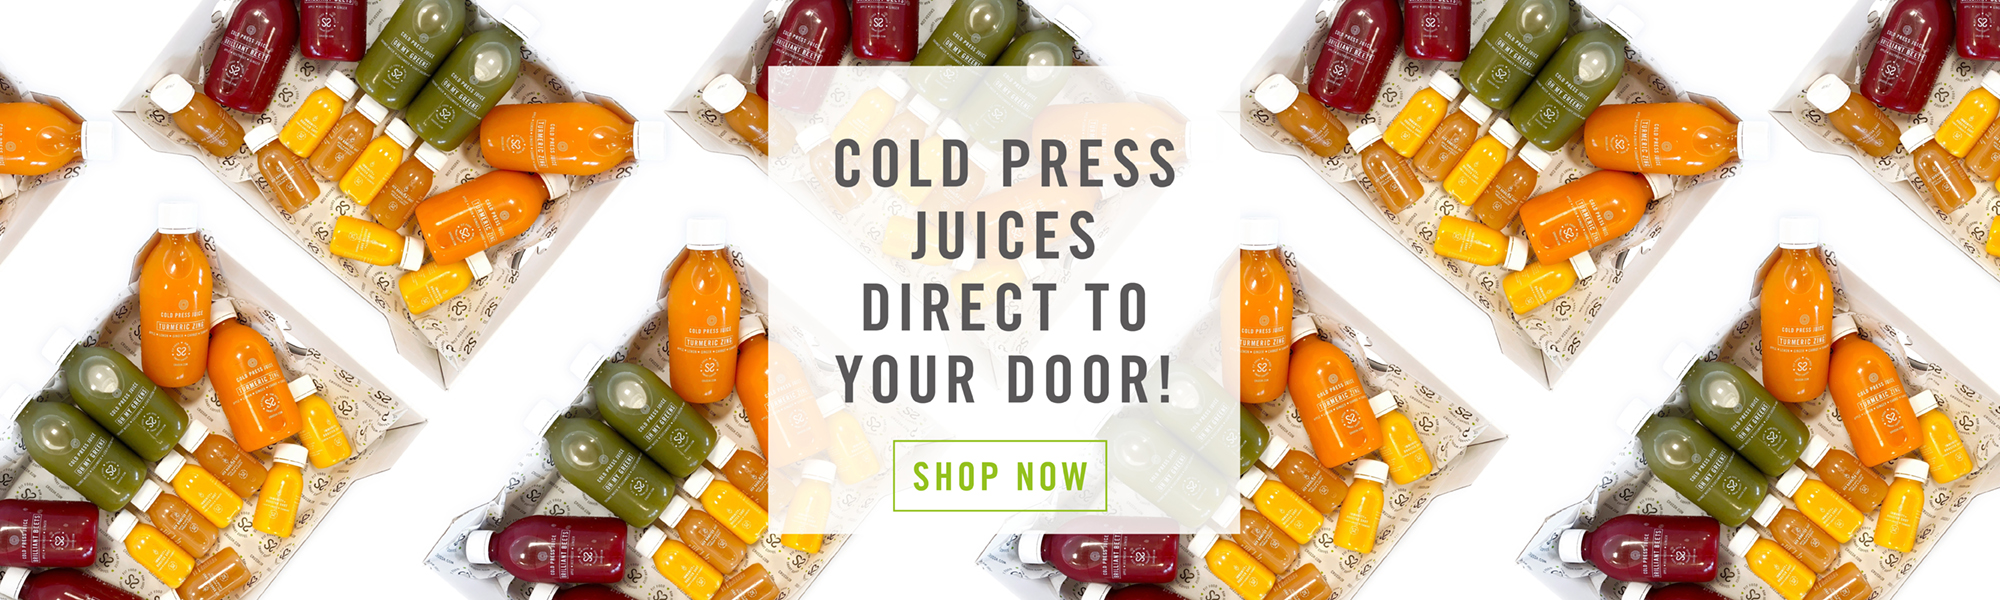 Cold Press juice